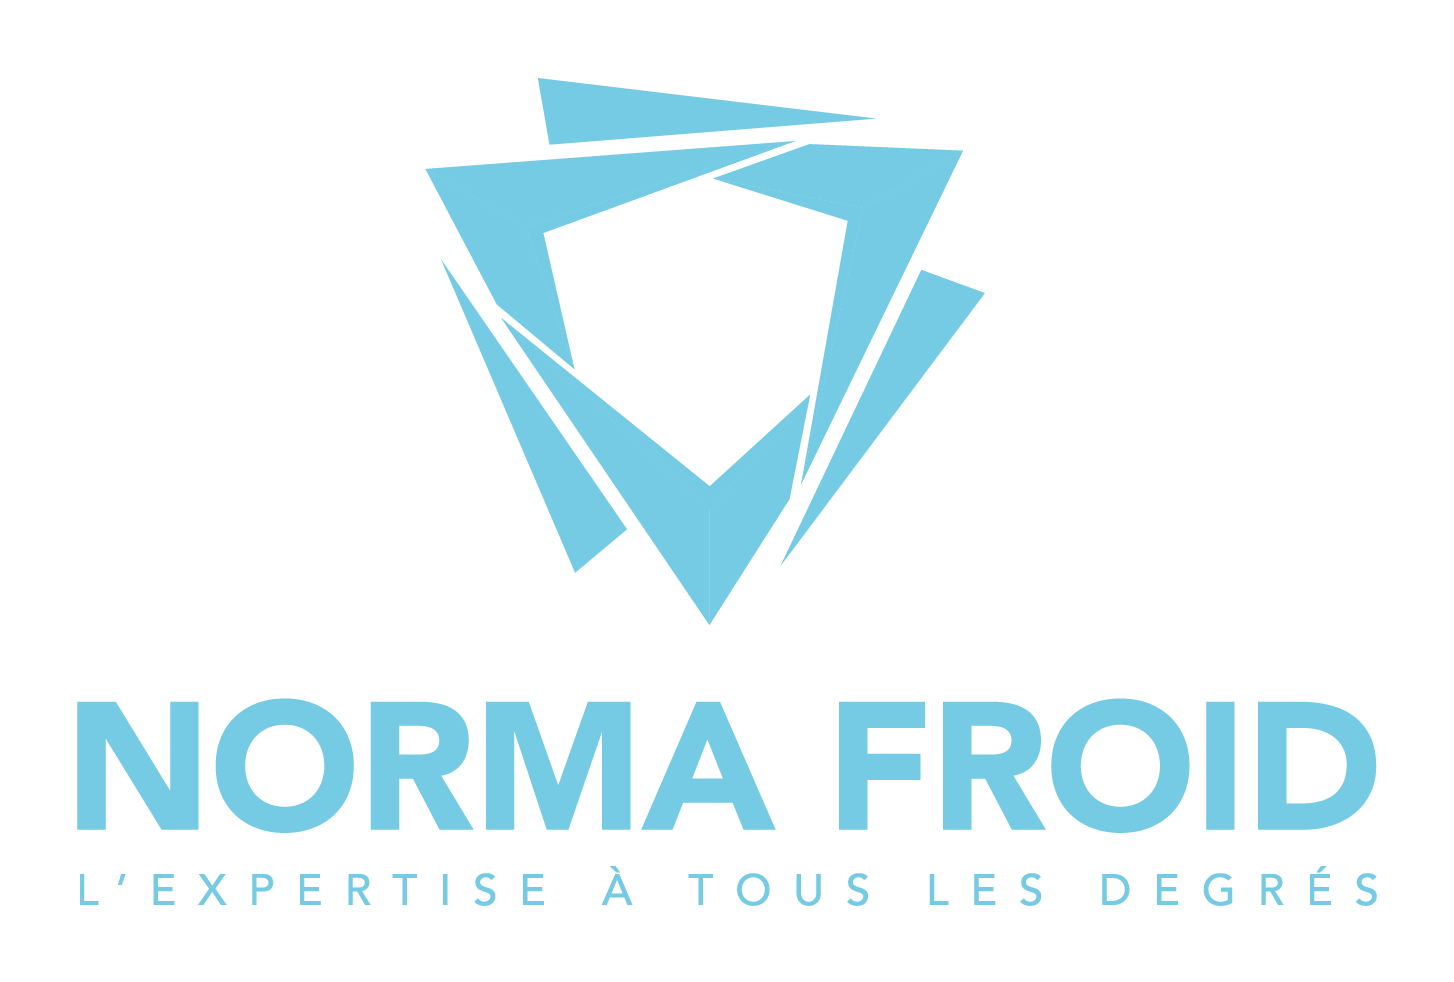 logo norma froid